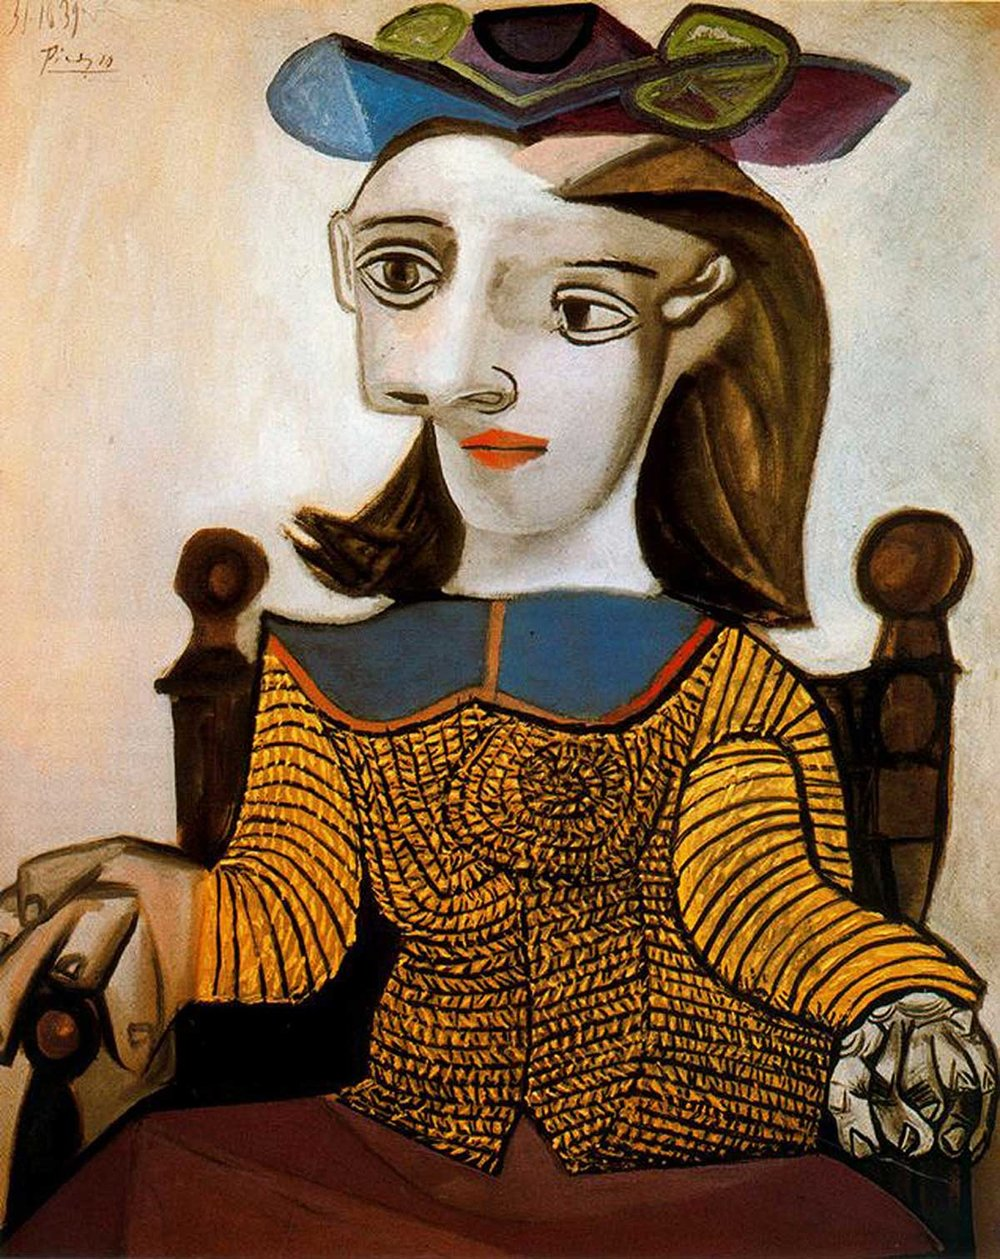 Dora Maar by Picasso, 1939